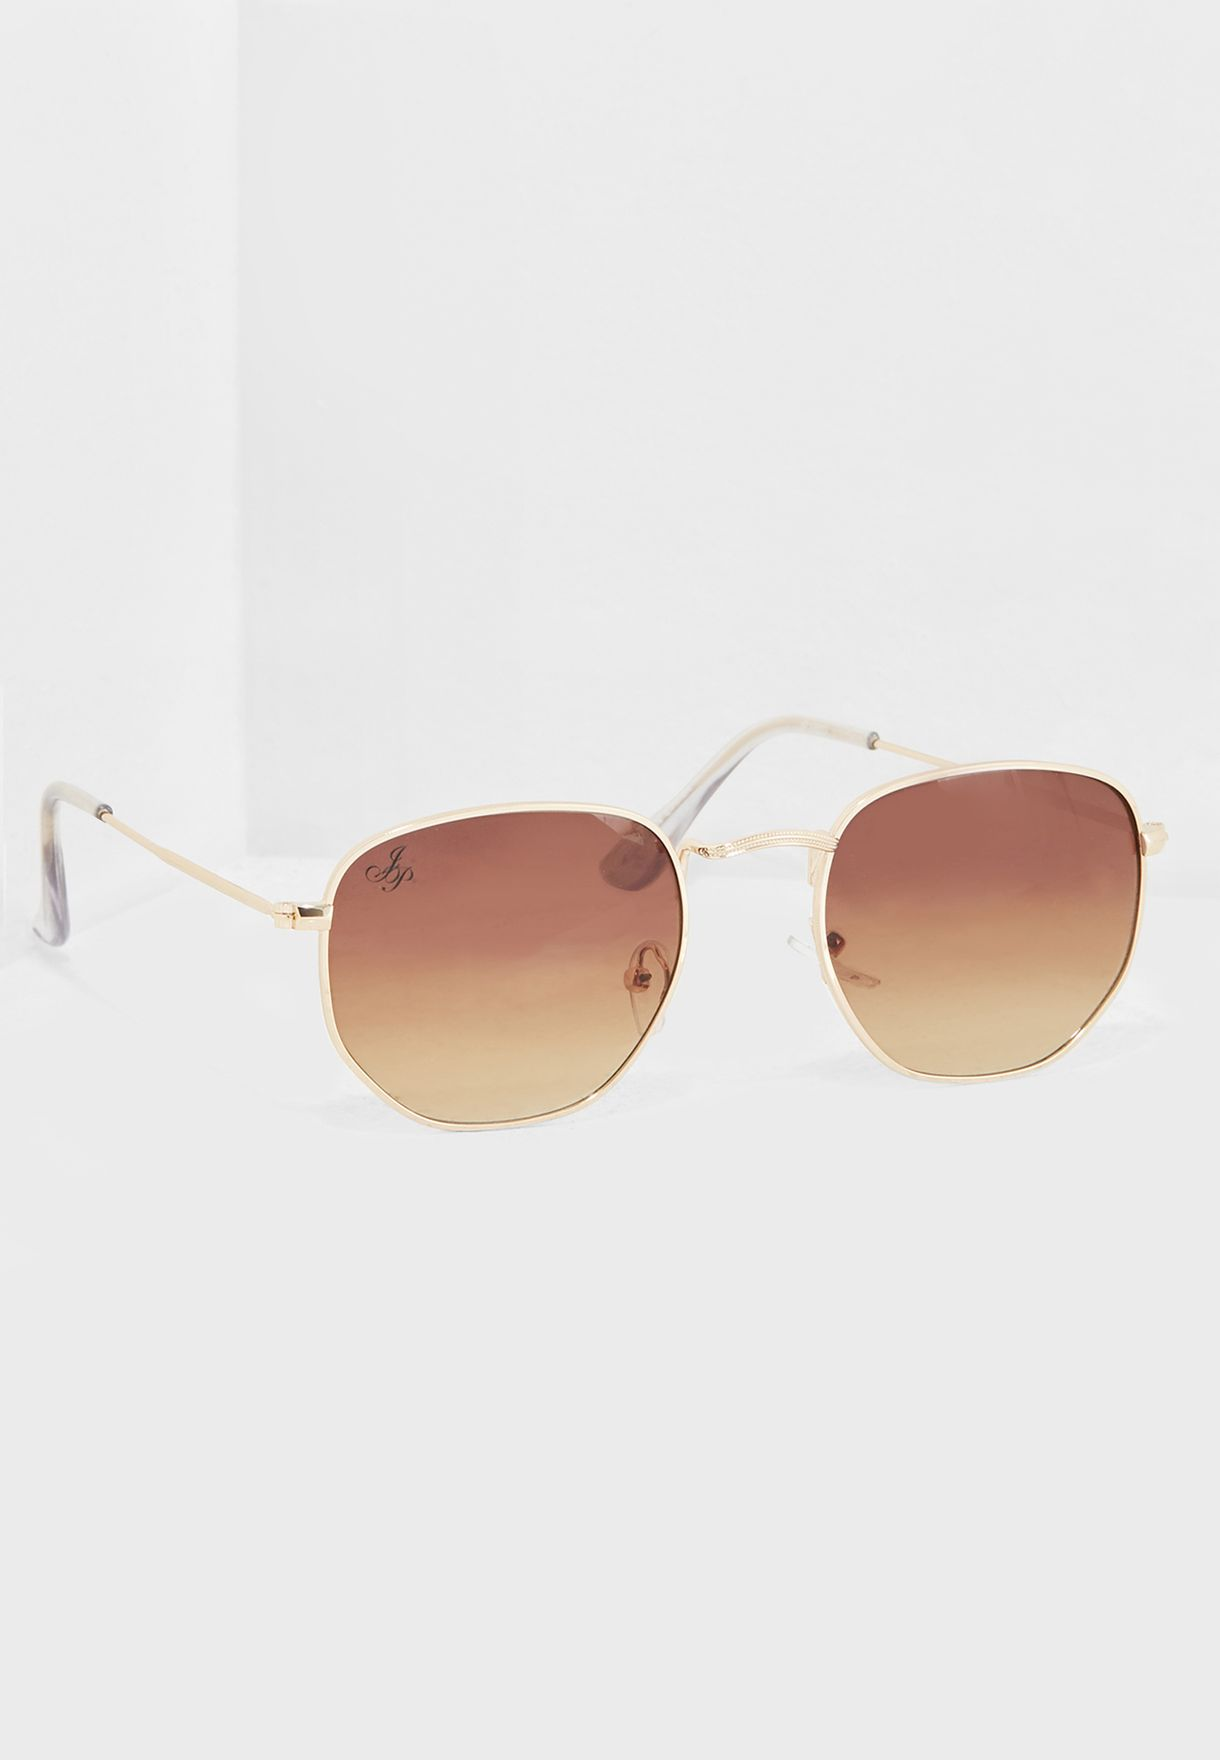 68ccc5136a Shop Jeepers Peepers gold Square Gradient Lens Sunglasses JP1880 for Women  in Qatar - JE122AC02IRX